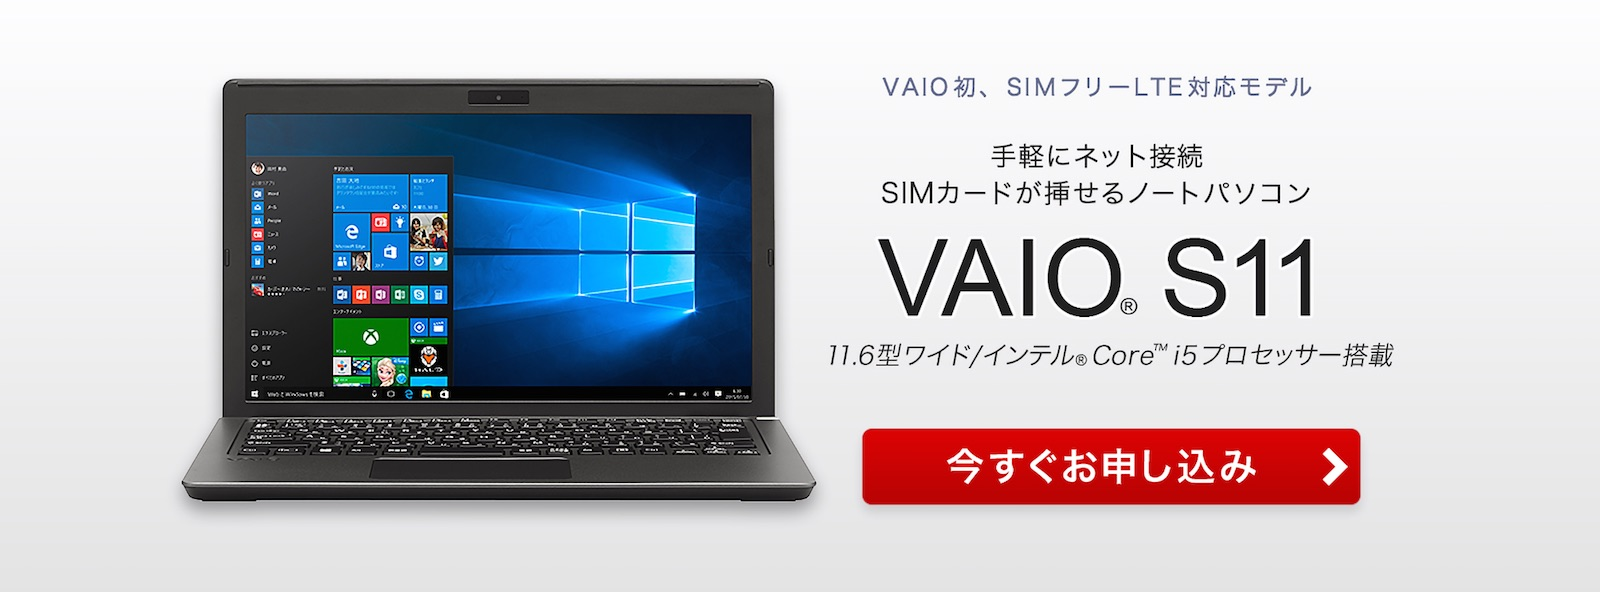 light-stylish-laptop-vaio-s11-rakuten-mobile